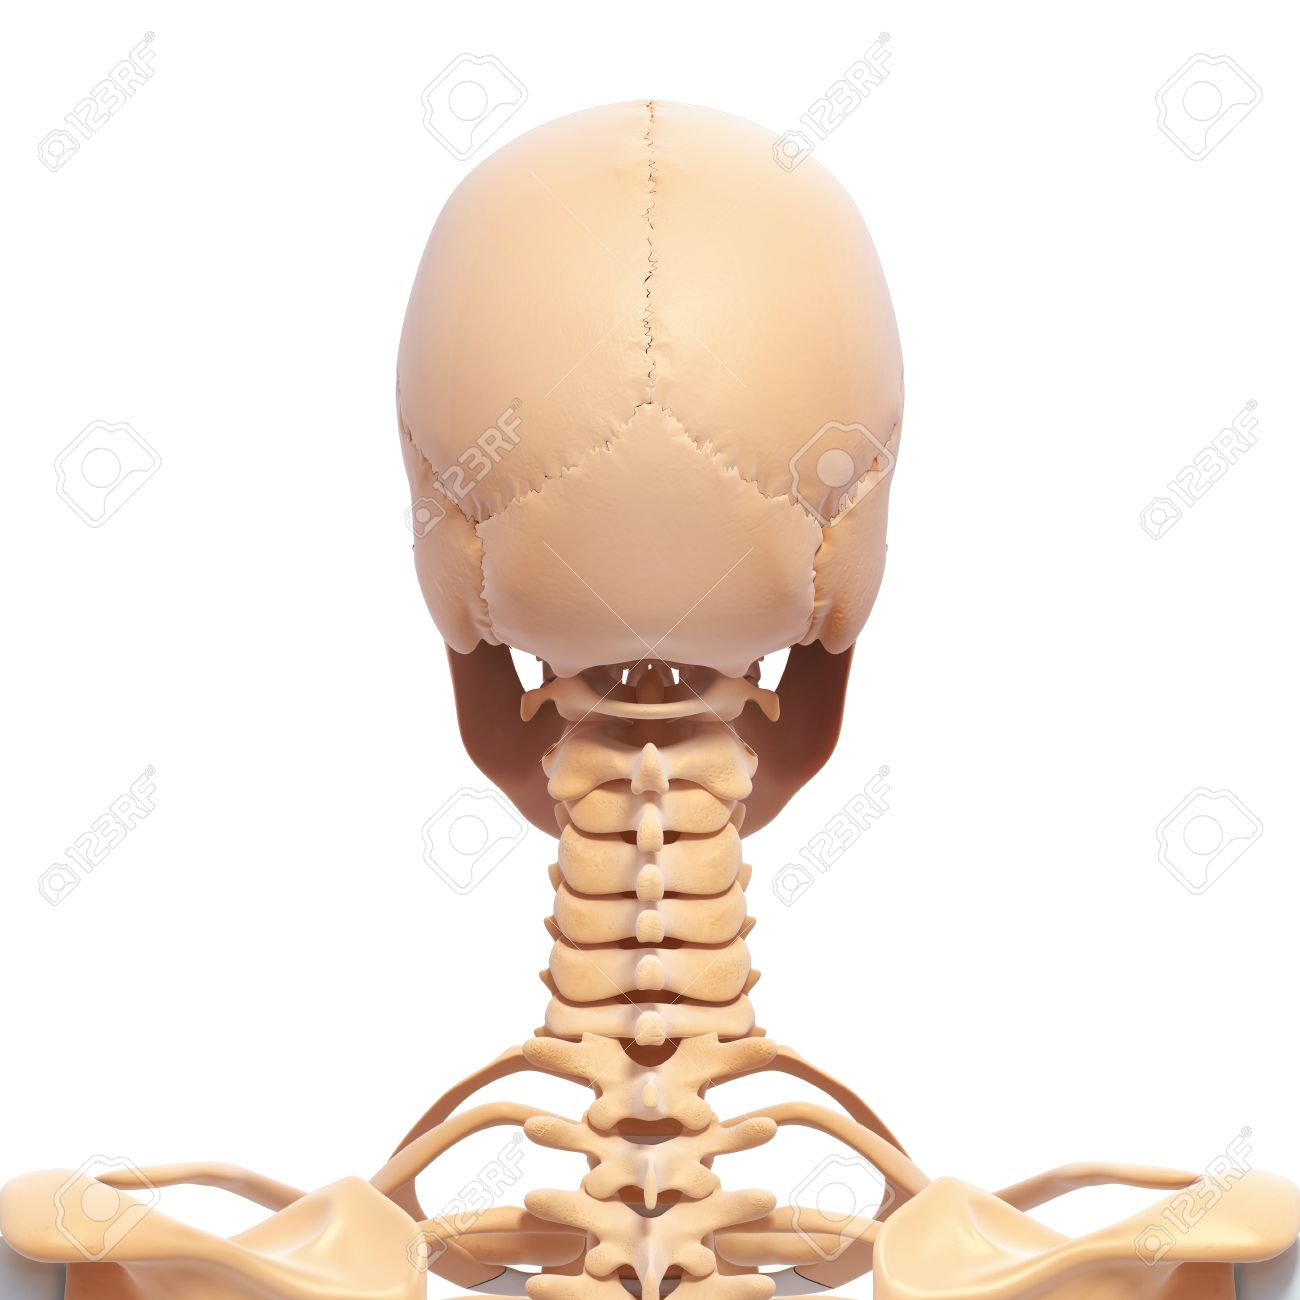 Back View Of Human Skeleton Of Head Stock Photo Picture And Royalty